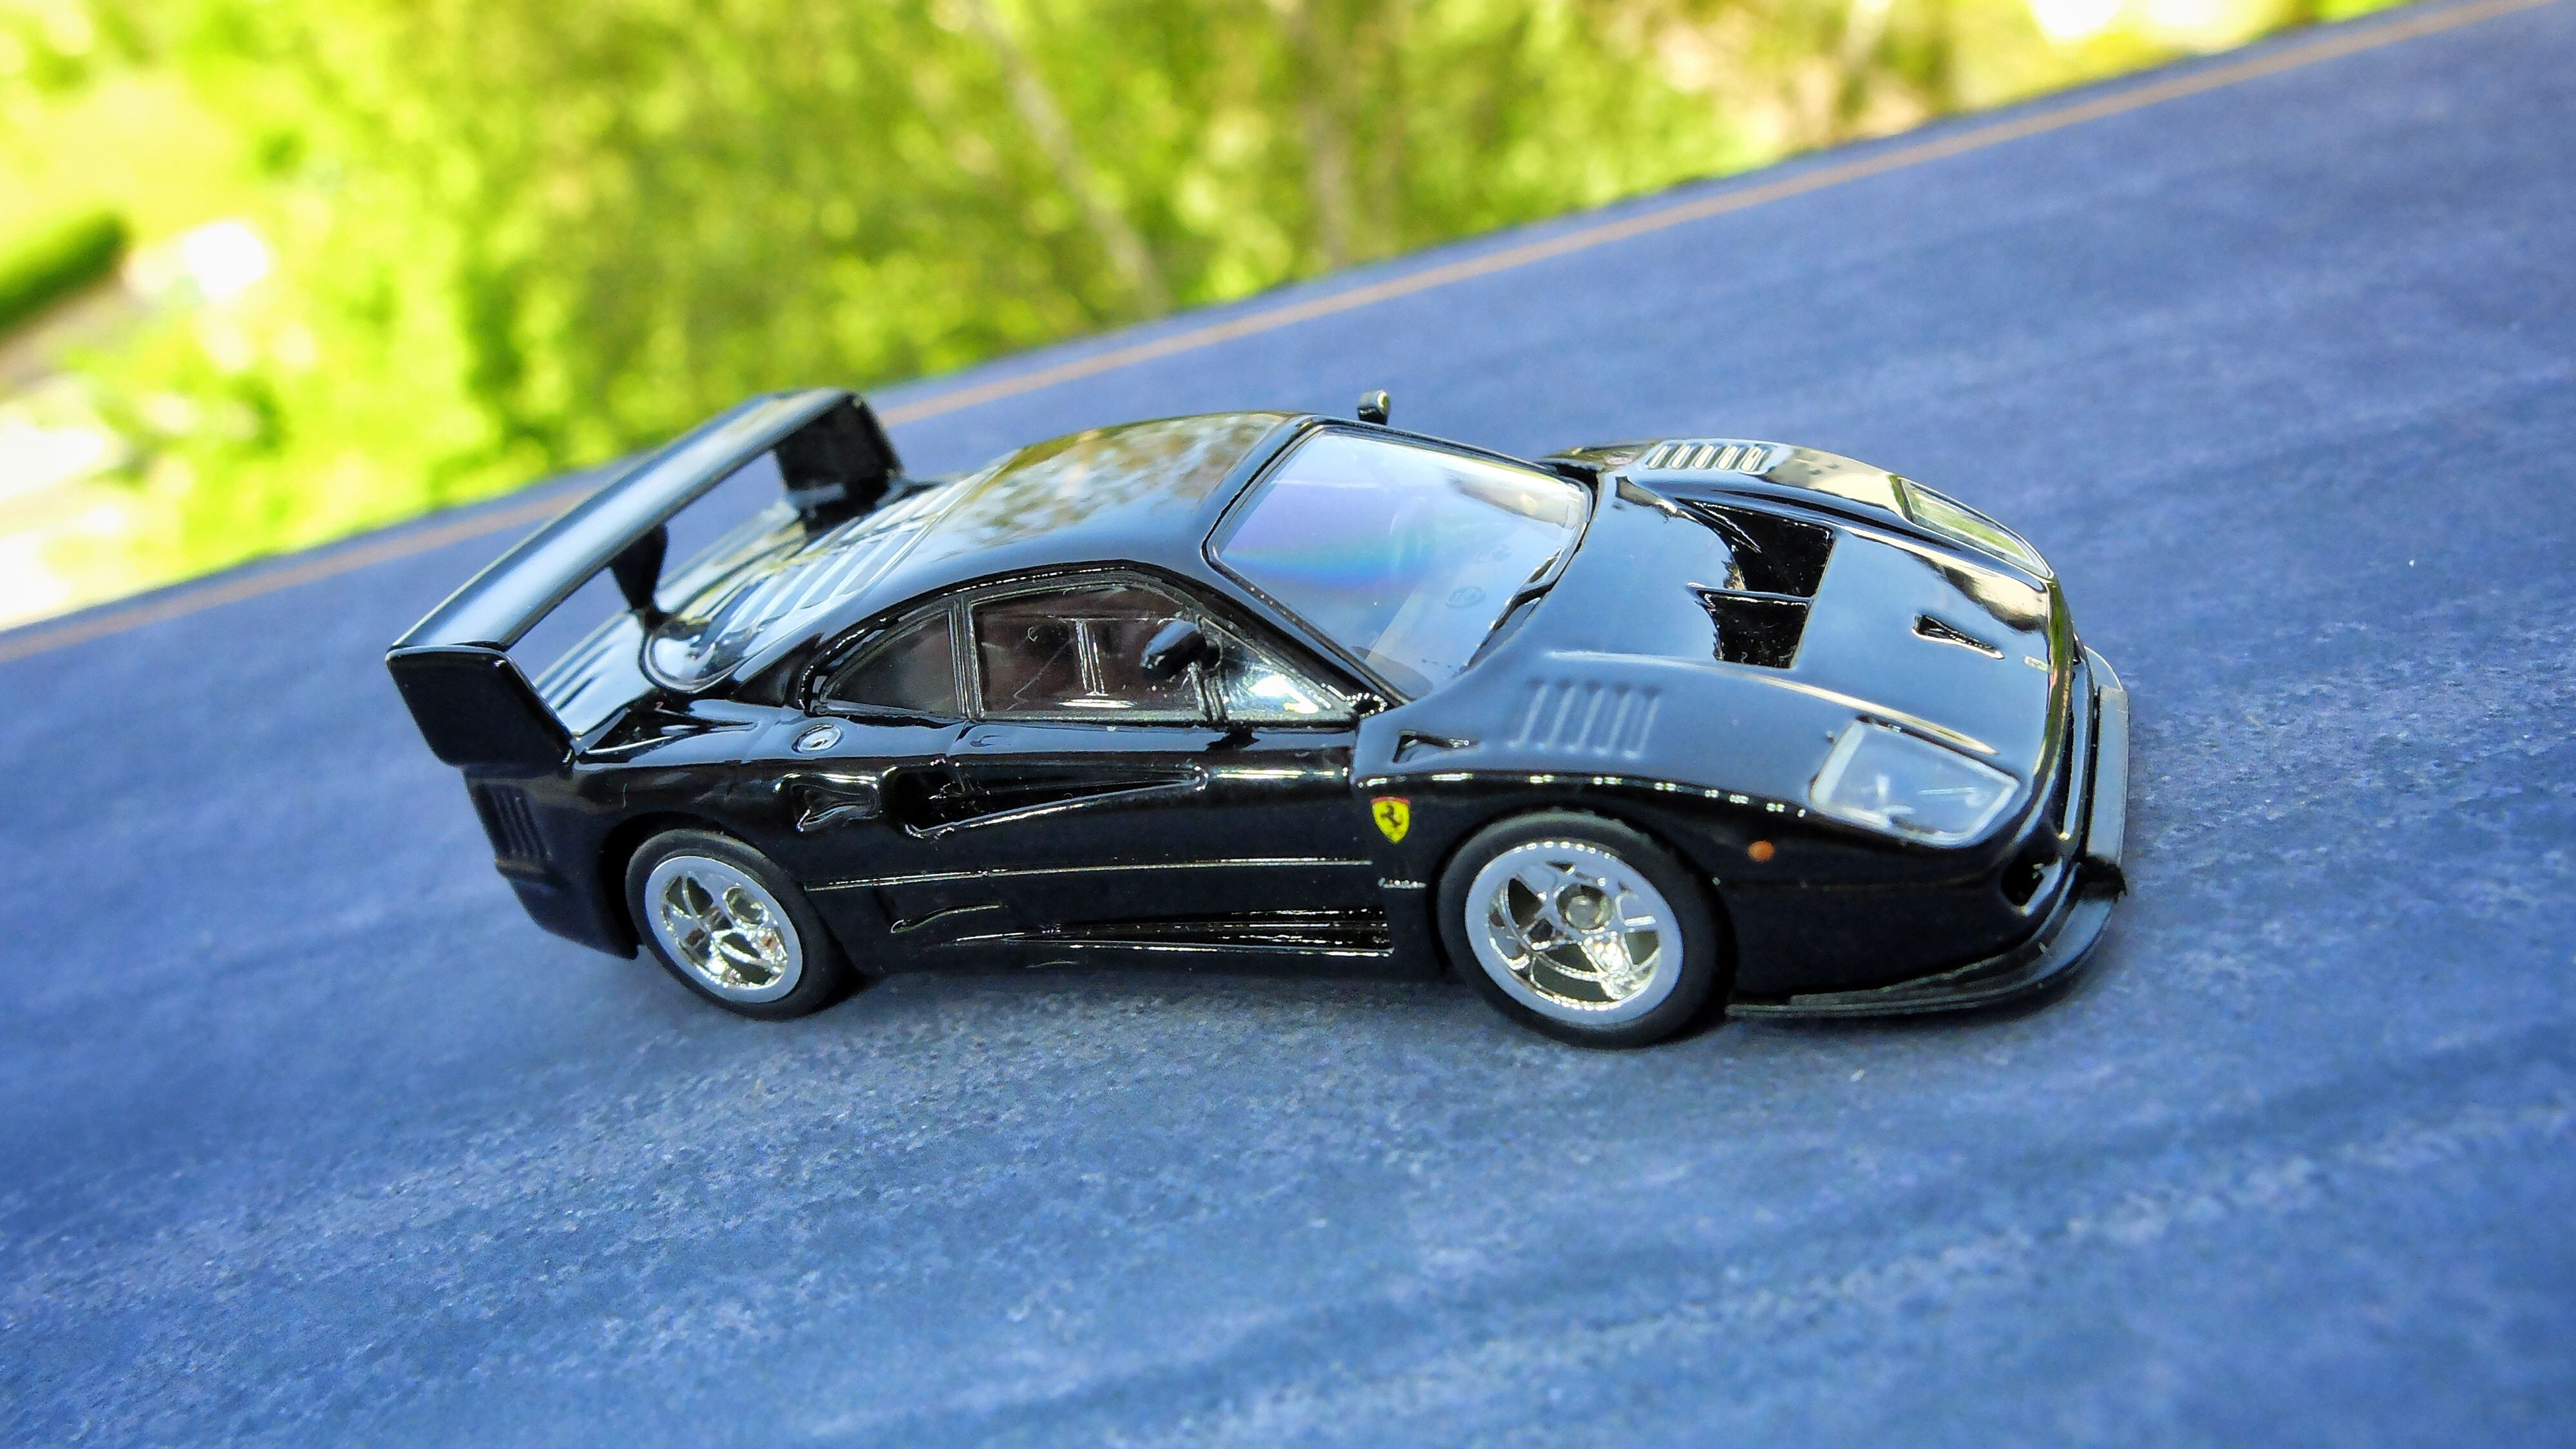 Ferrari F40 Gte By Kyosho With Images Custom Hot Wheels